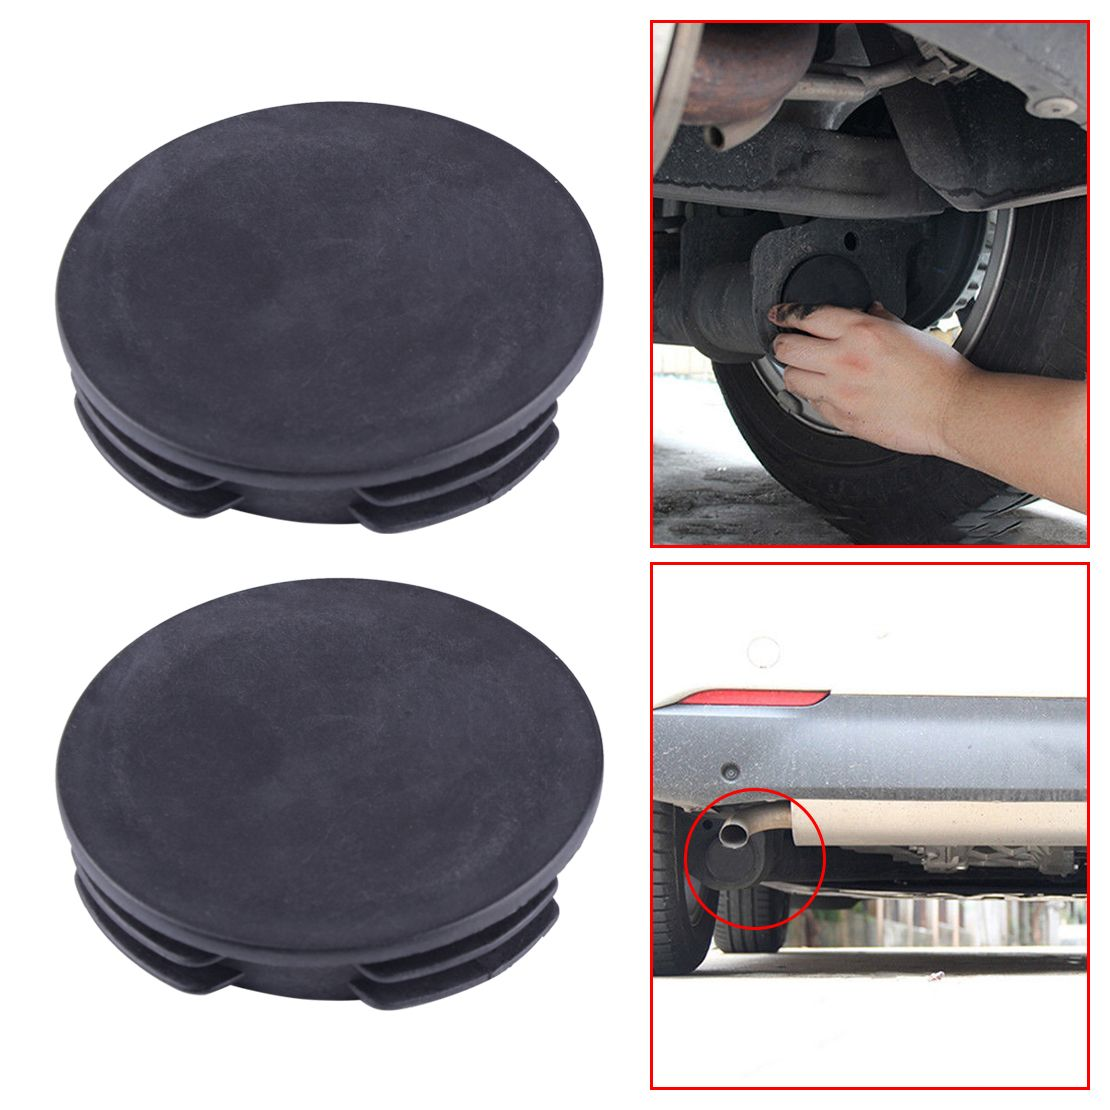 CITALL Car Exhaust Tail Pipe Tip Muffler Protector Cap Water Baffle Cover for Benz Smart Fortwo Forfour W451 20082009-2013  2014